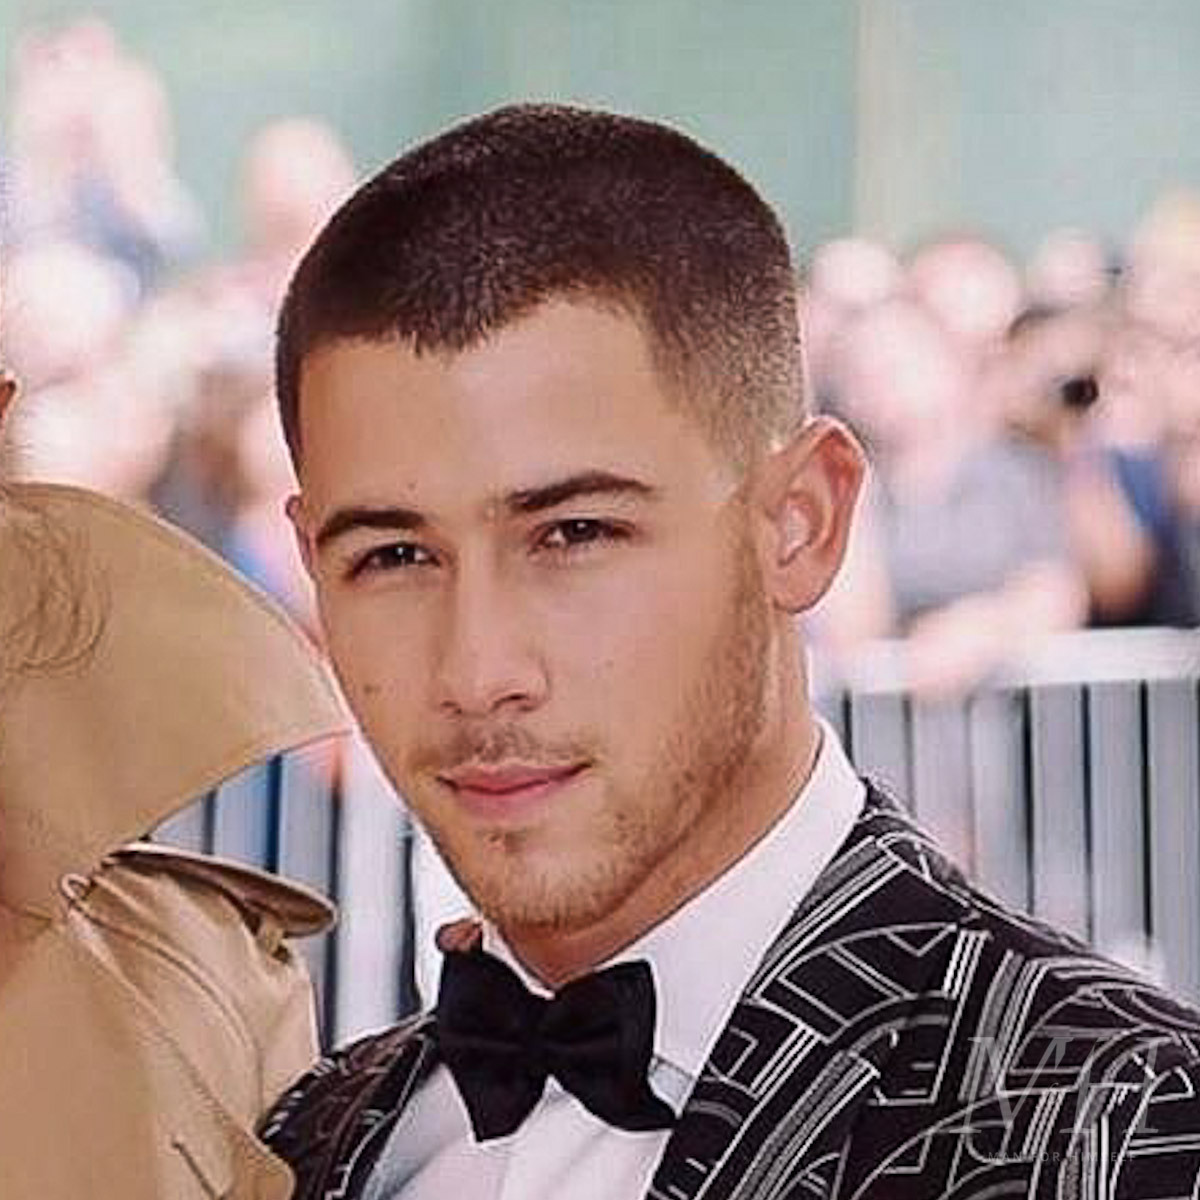 nick-jonas-mens-hairstyle-haircut-how-to-buzz-cut-MFHC8-Man-For-Himself